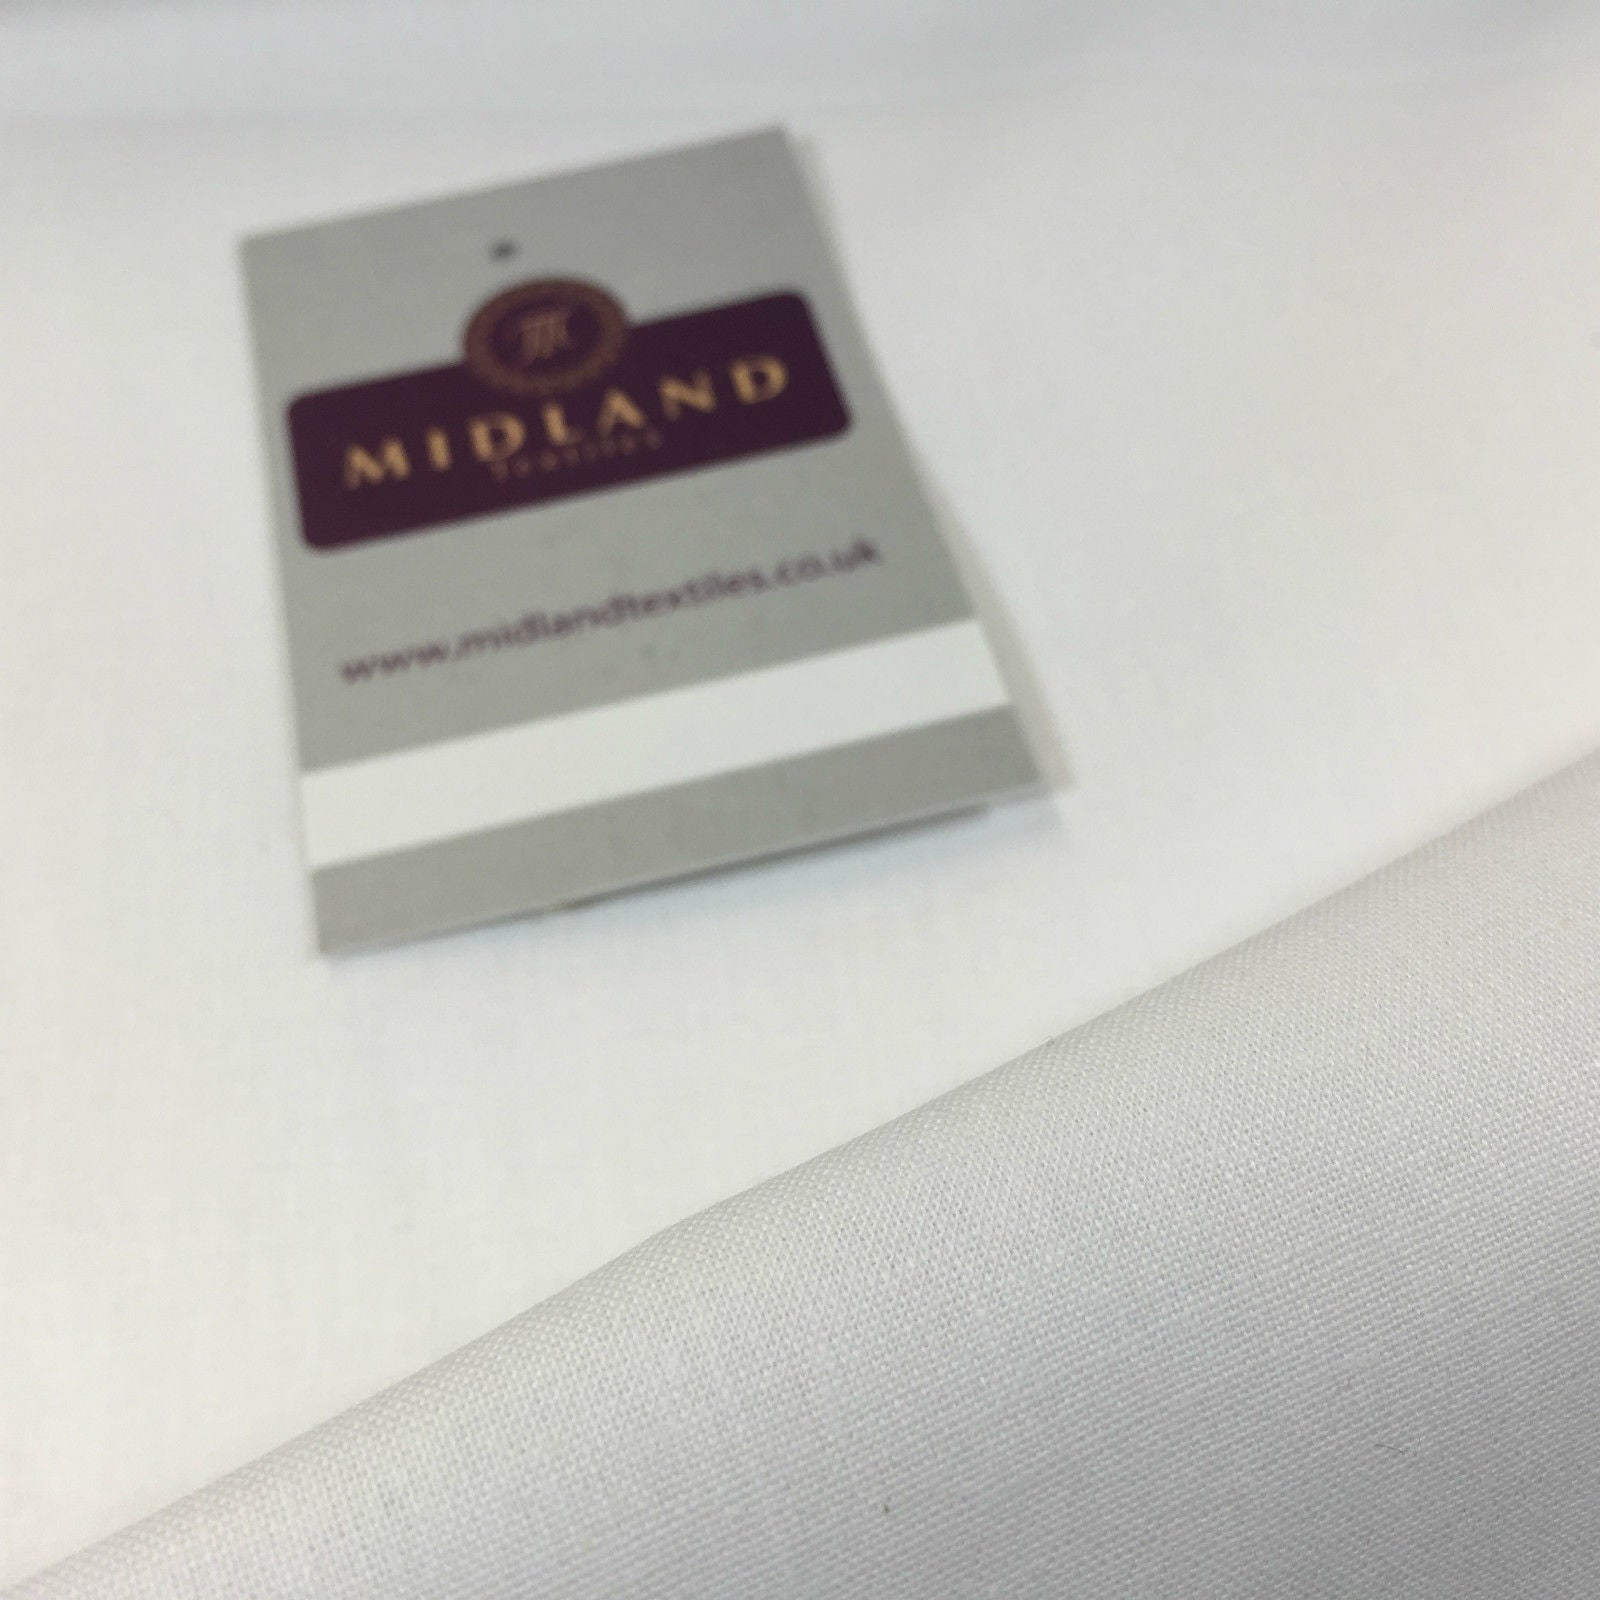 "100% Cotton Sheeting fabric ideal for bedding, backdrops & Crafting 94"" M702 - Midland Textiles & Fabric"